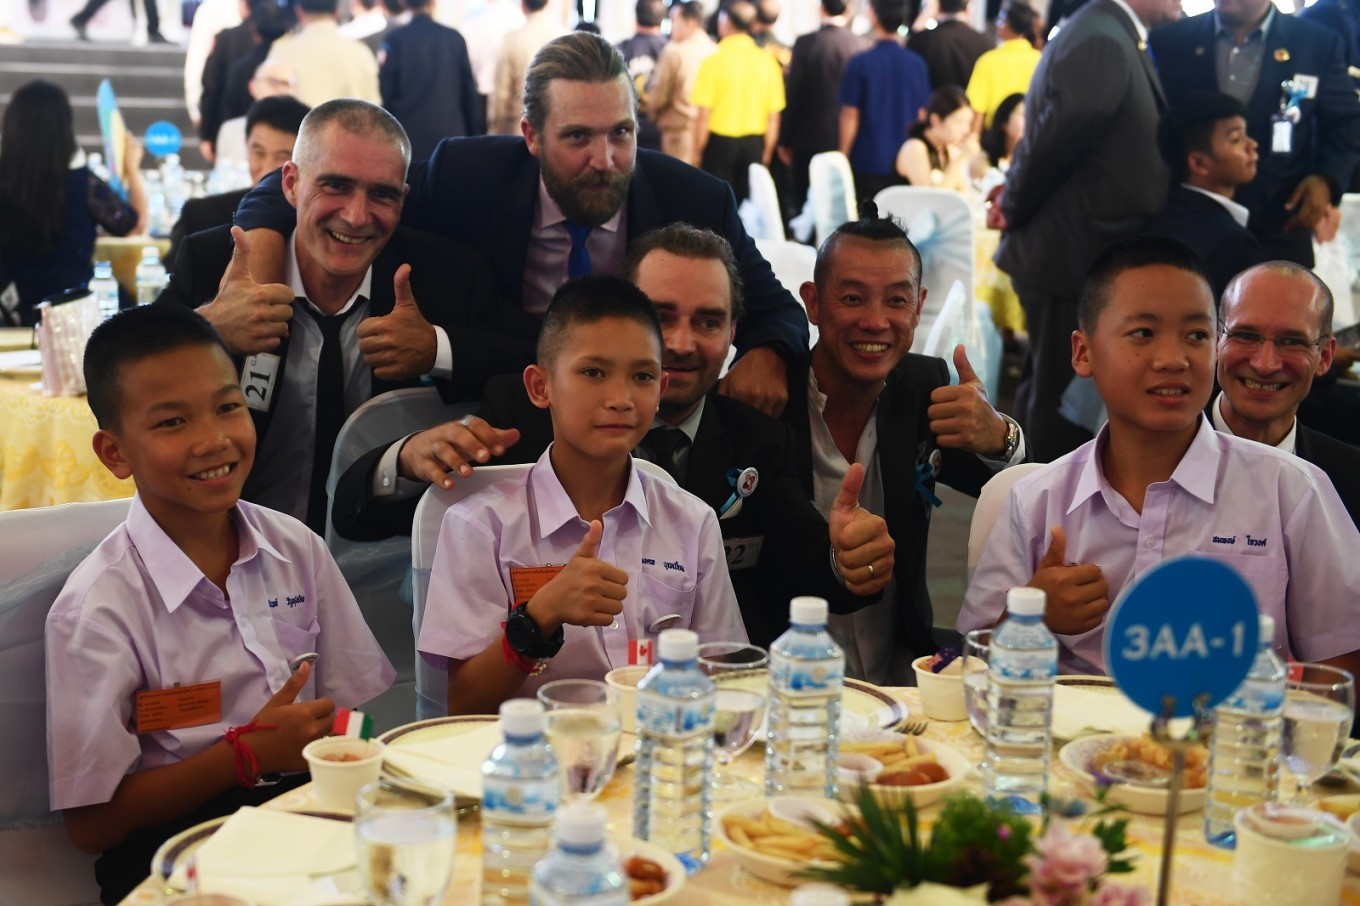 Three members of the 'Wild Boars' football club pose with divers, who were involved in their rescue operation, during a reception in Bangkok on September 6, 2018 | AFP